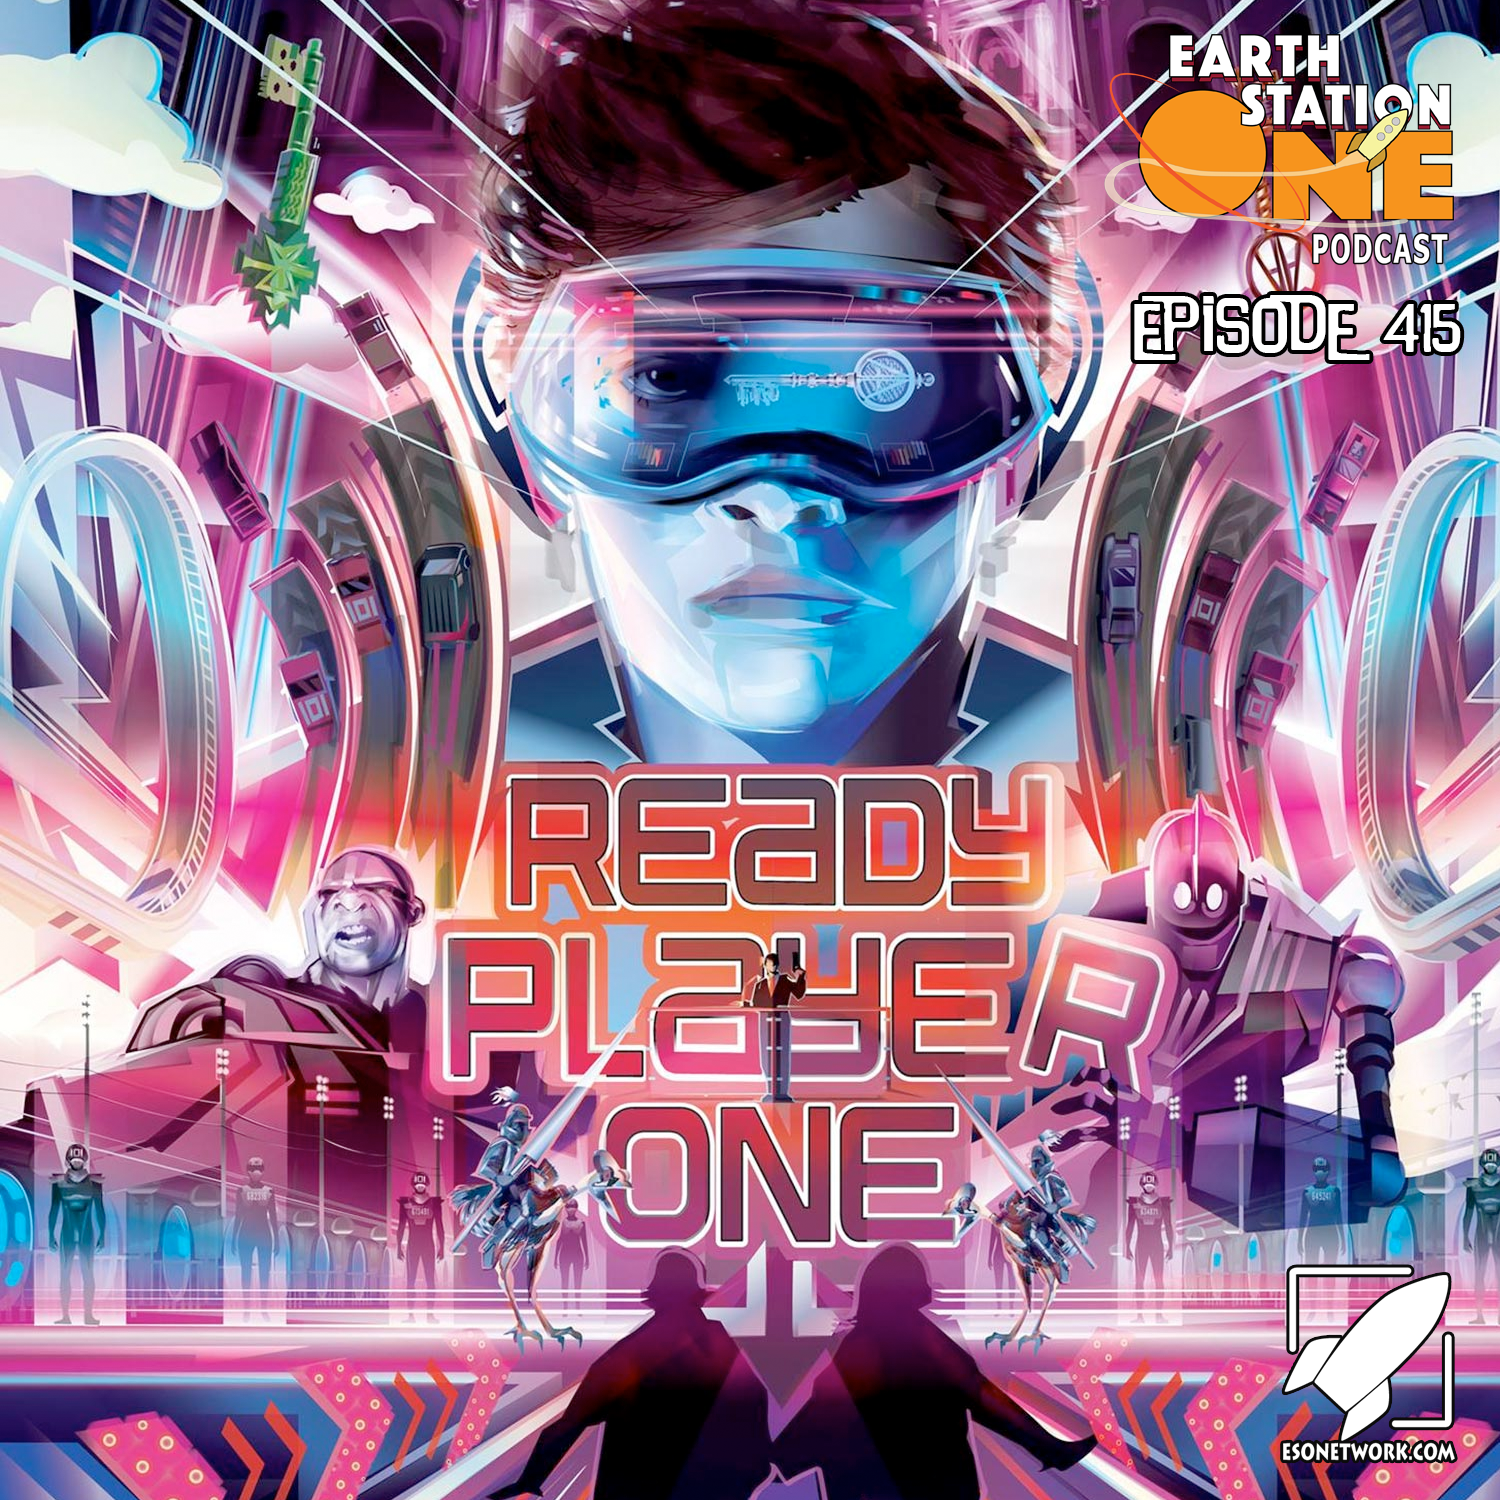 Earth Station One Podcast Ep 415 - Ready Player One Movie Review